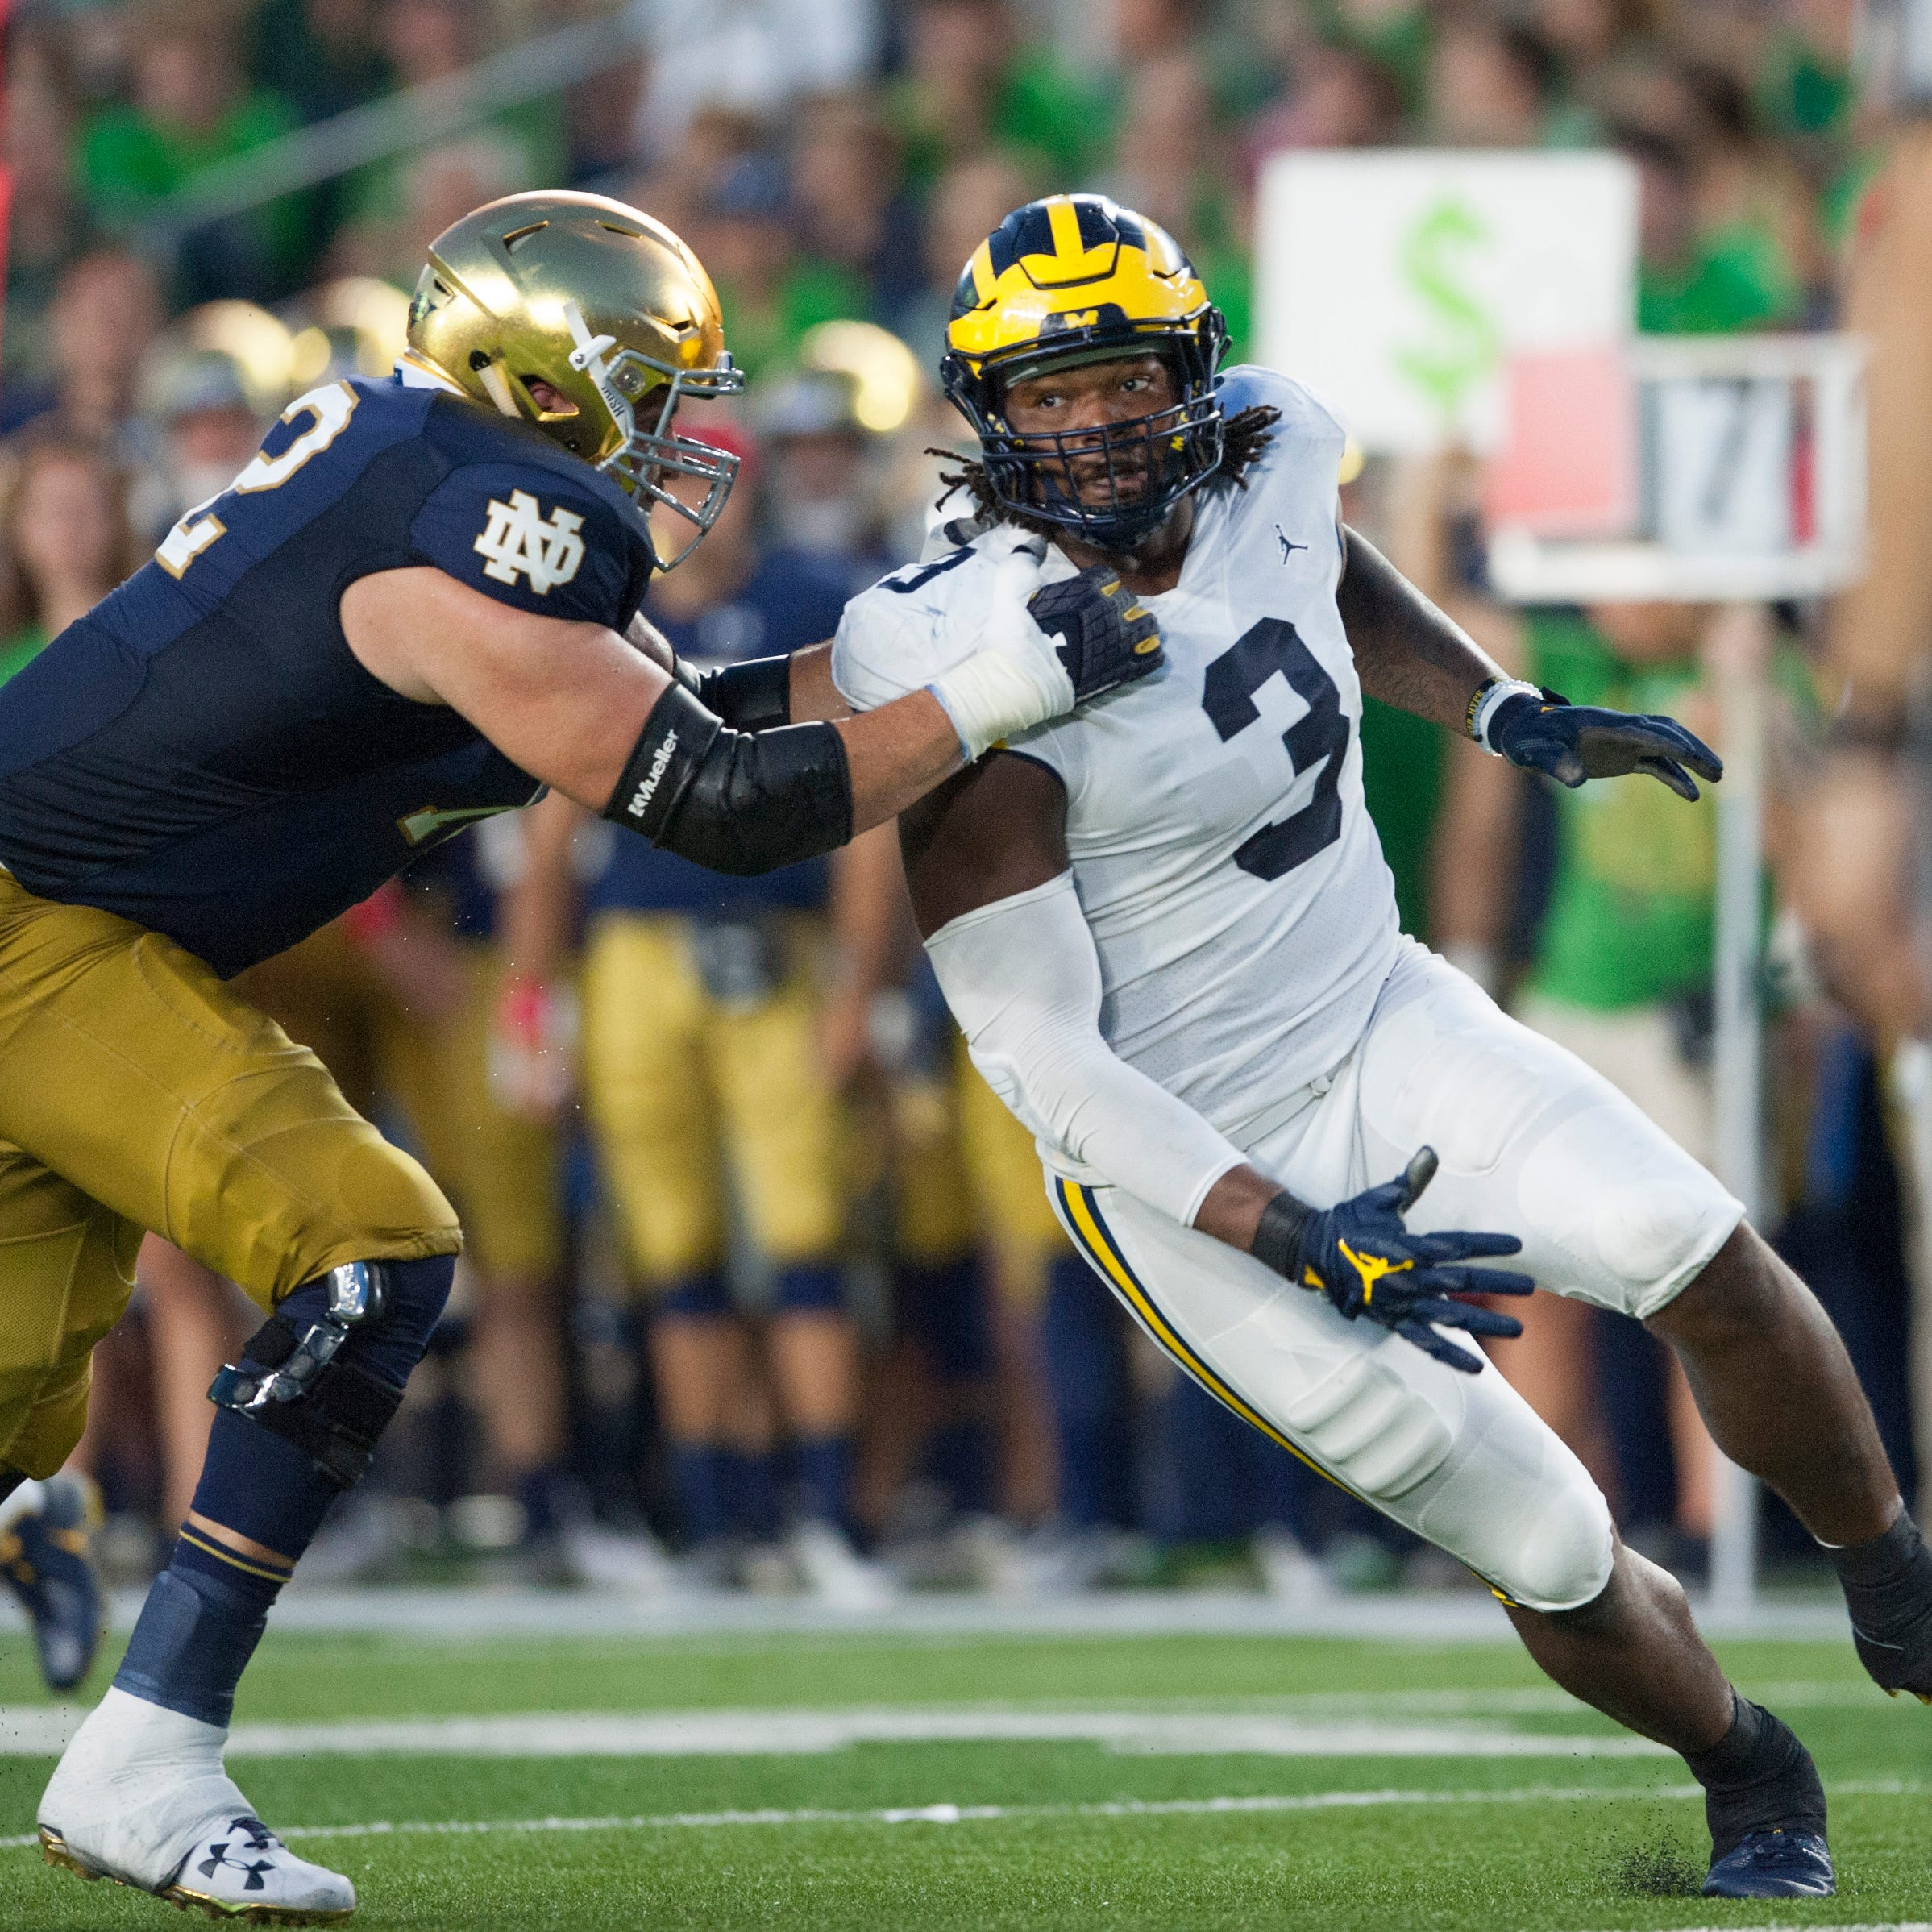 Harbaugh keeps lid on Michigan injury situation, won't say if Rashan Gary will be available